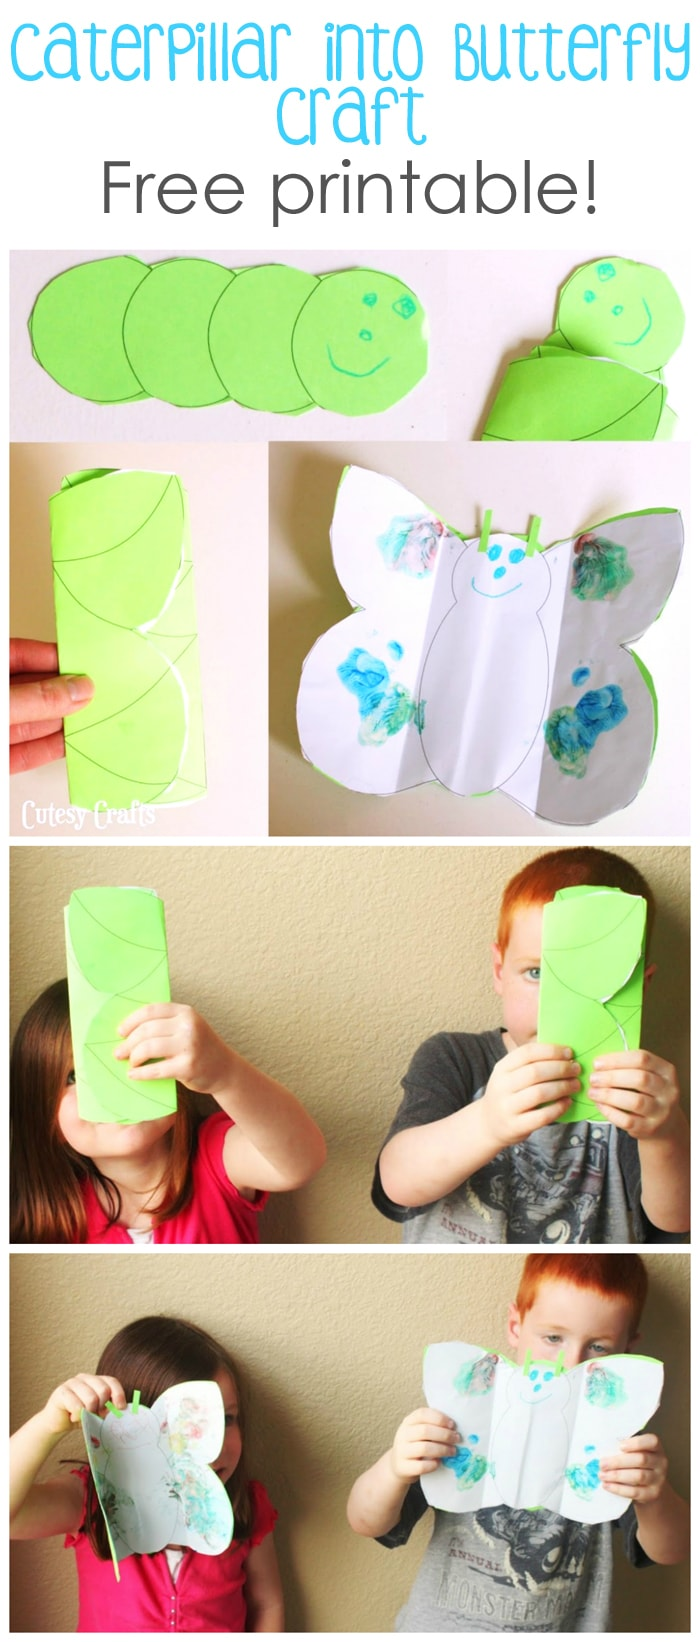 Caterpillar into Butterfly Craft for Kids - Cutesy Crafts